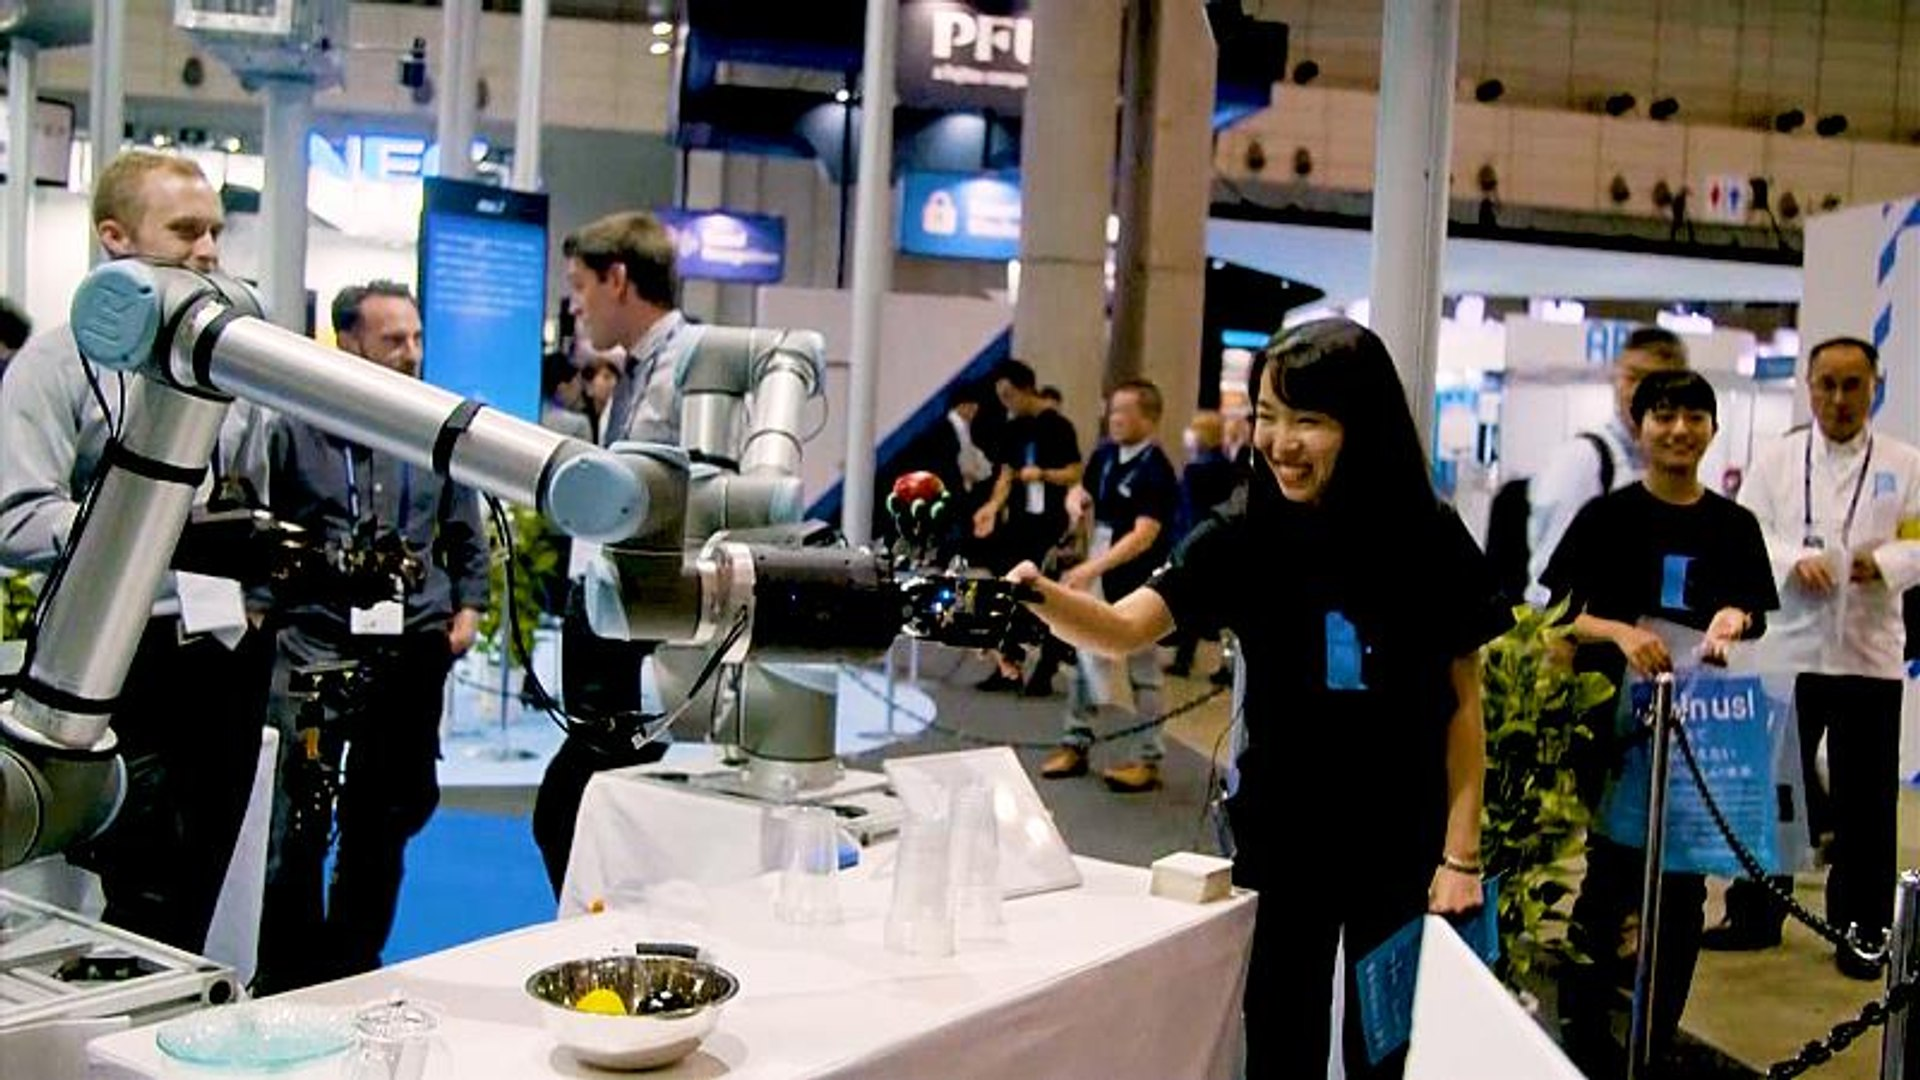 Latest cutting-edge technology showcased at Japan trade show